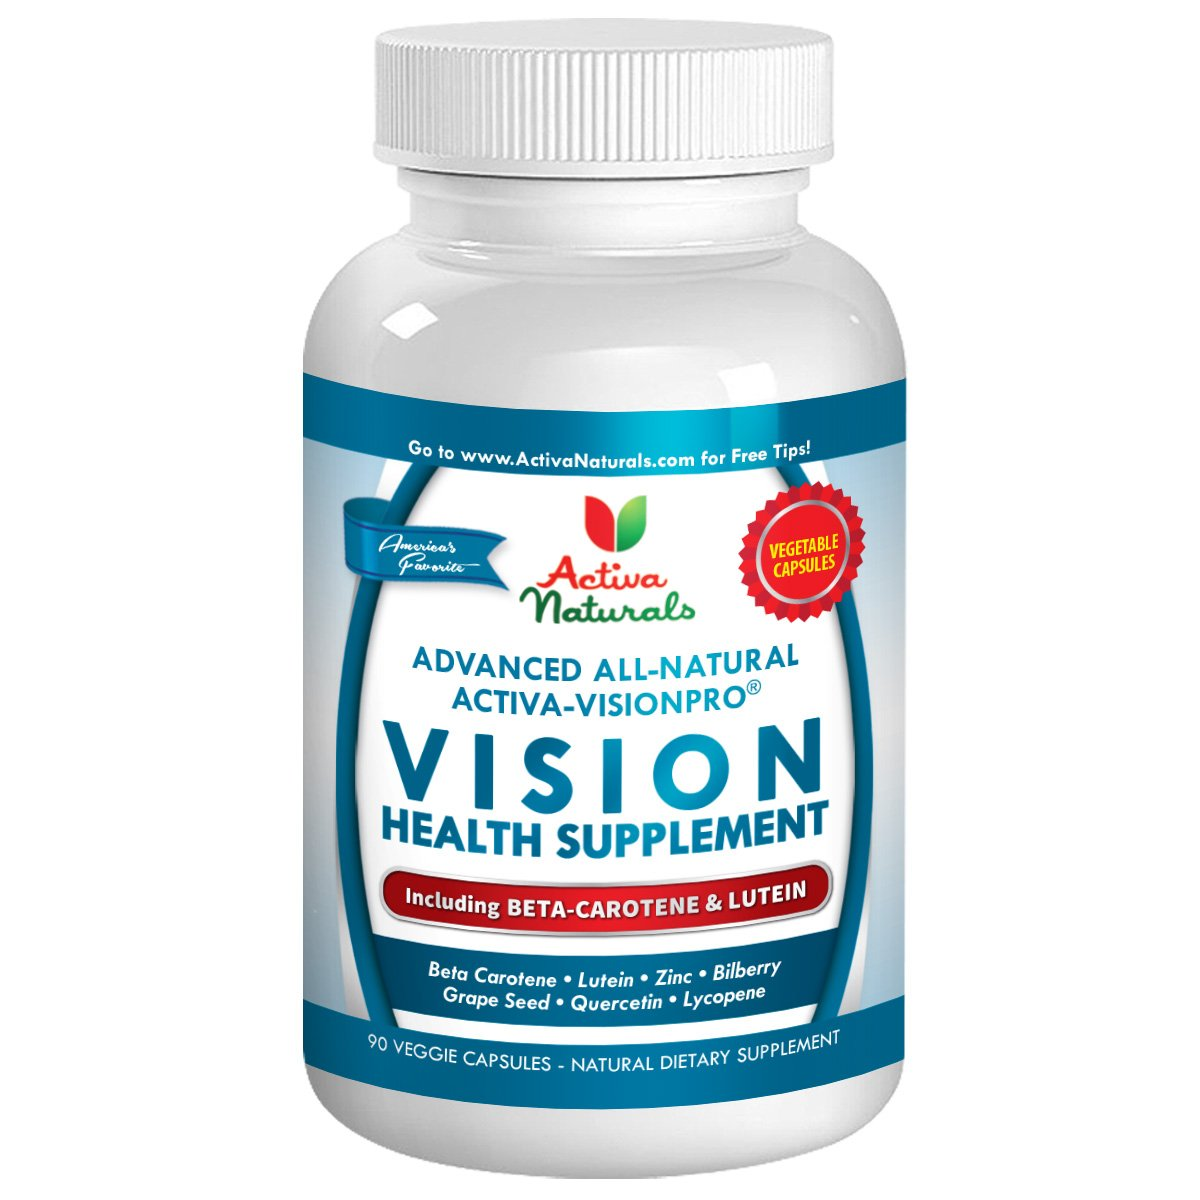 Beta Carotene Plus Blend Supplement with L-Taurine - 90 Veg. Capsules with Nutritional Eye Health Supplements